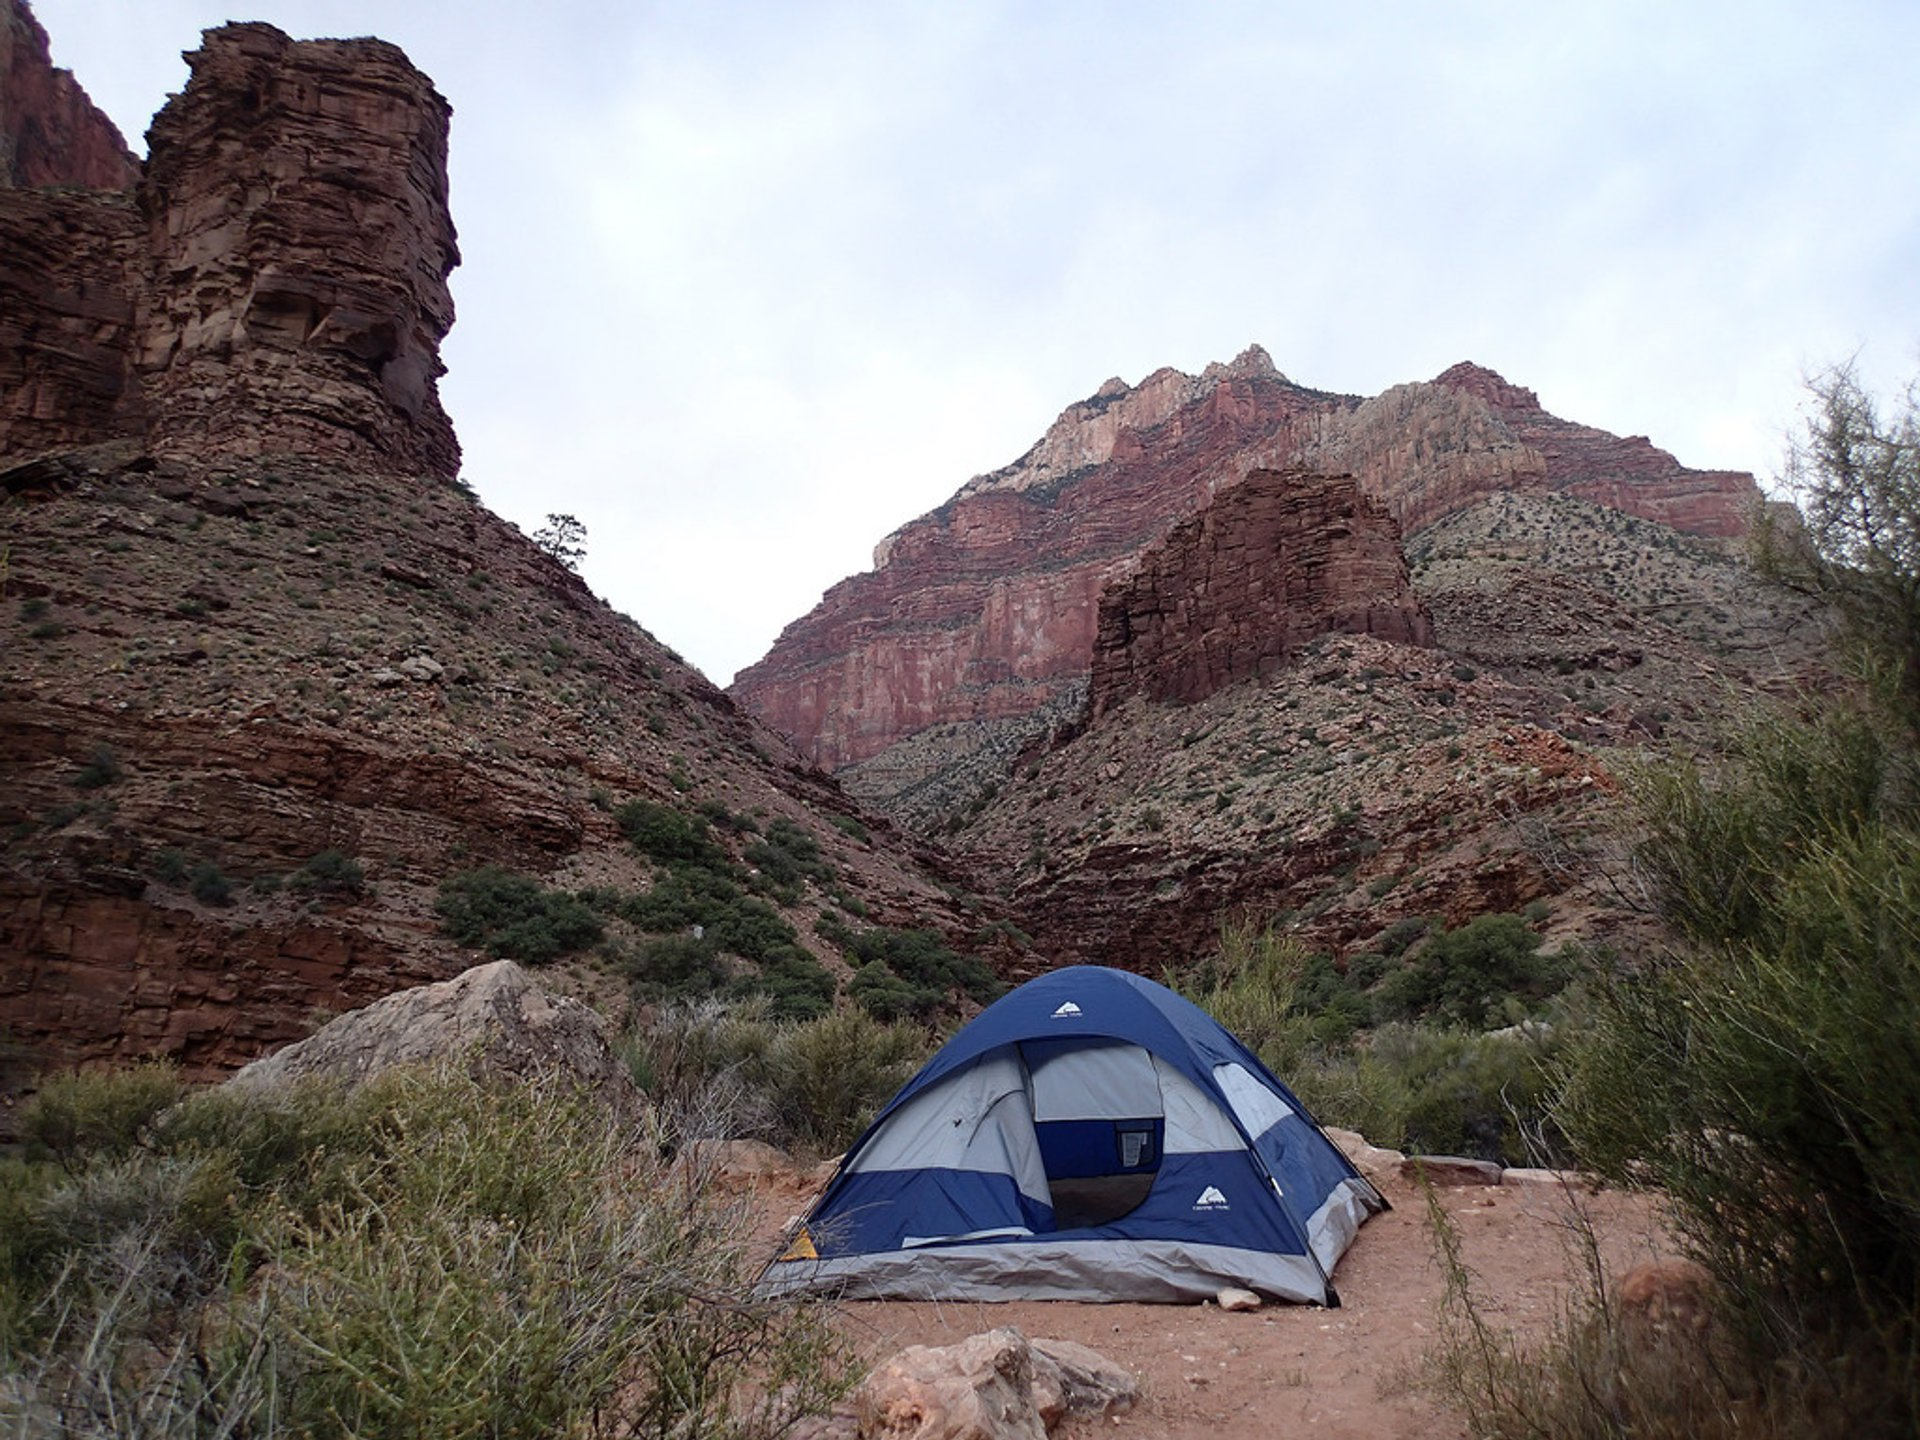 Camping in the Grand Canyon 2020